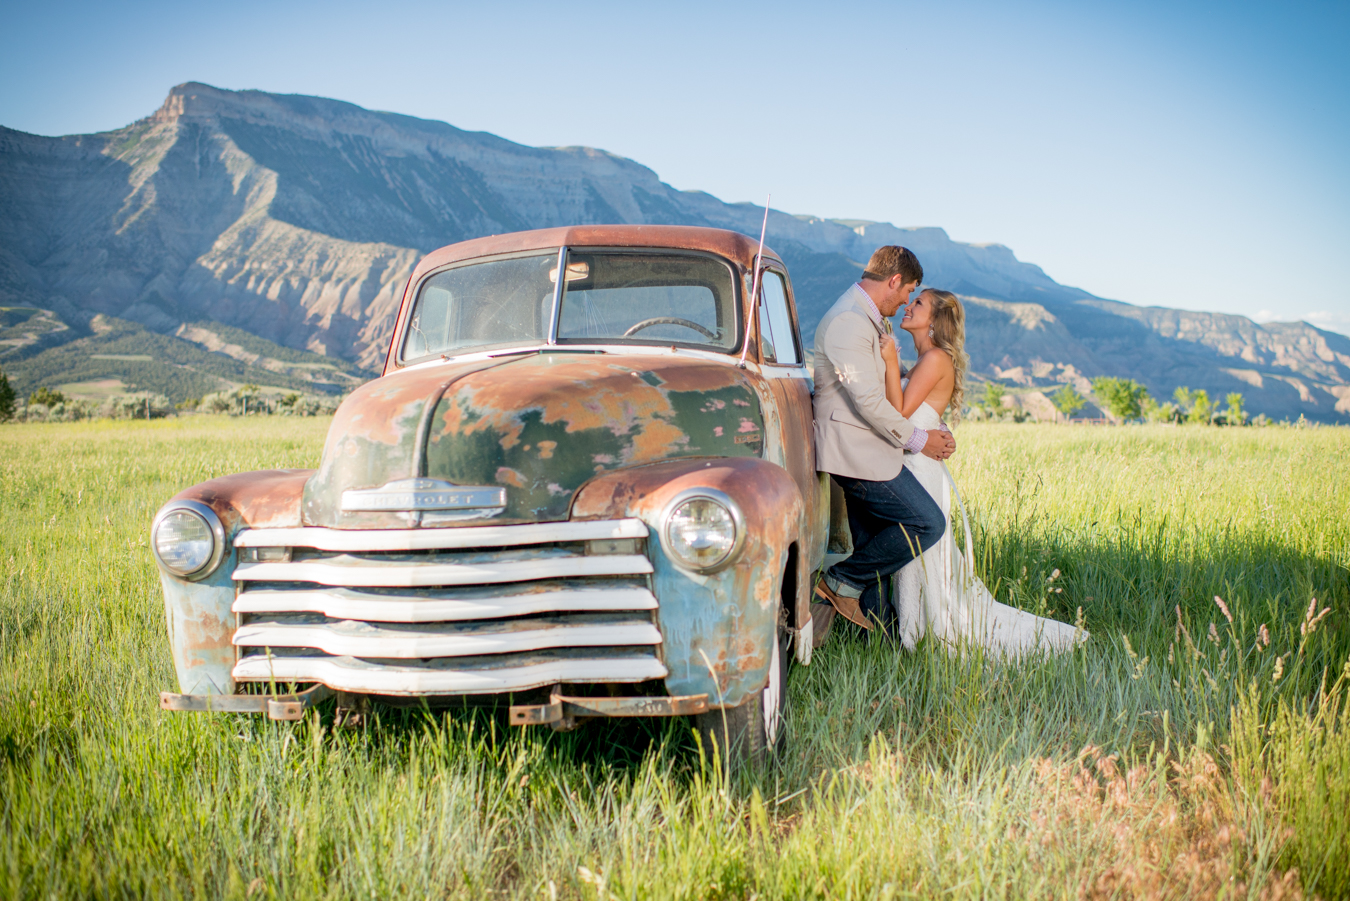 Parachute Colorado Mountain Wedding Natural You Old Chevy Truck